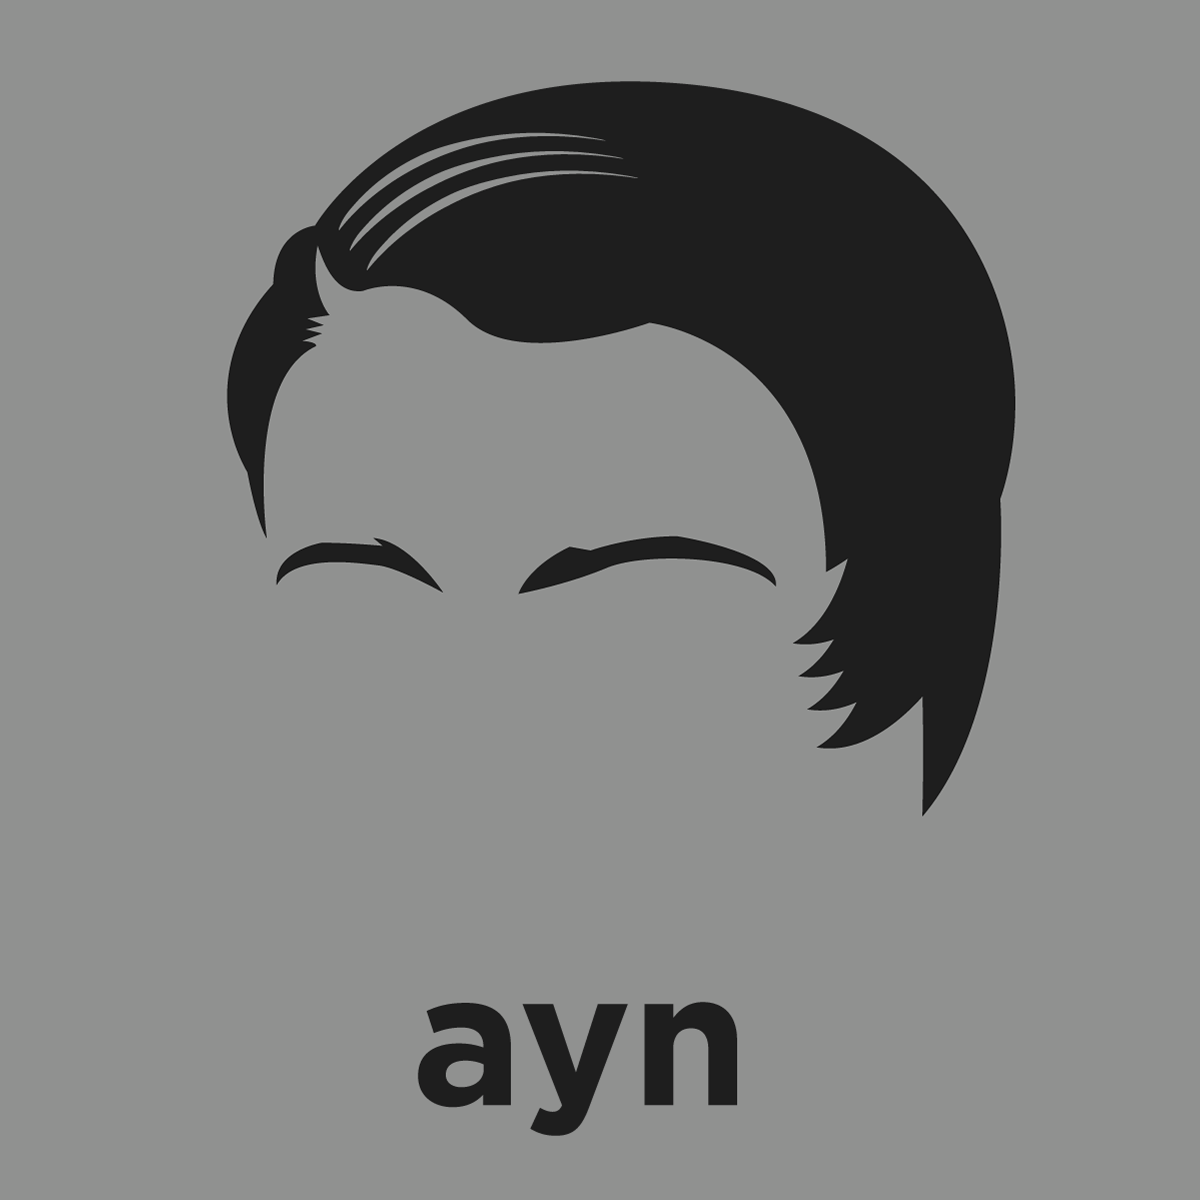 Design your own ethical t shirt - A T Shirt With A Minimalist Hair Based Illustration Of Ayn Rand Author And